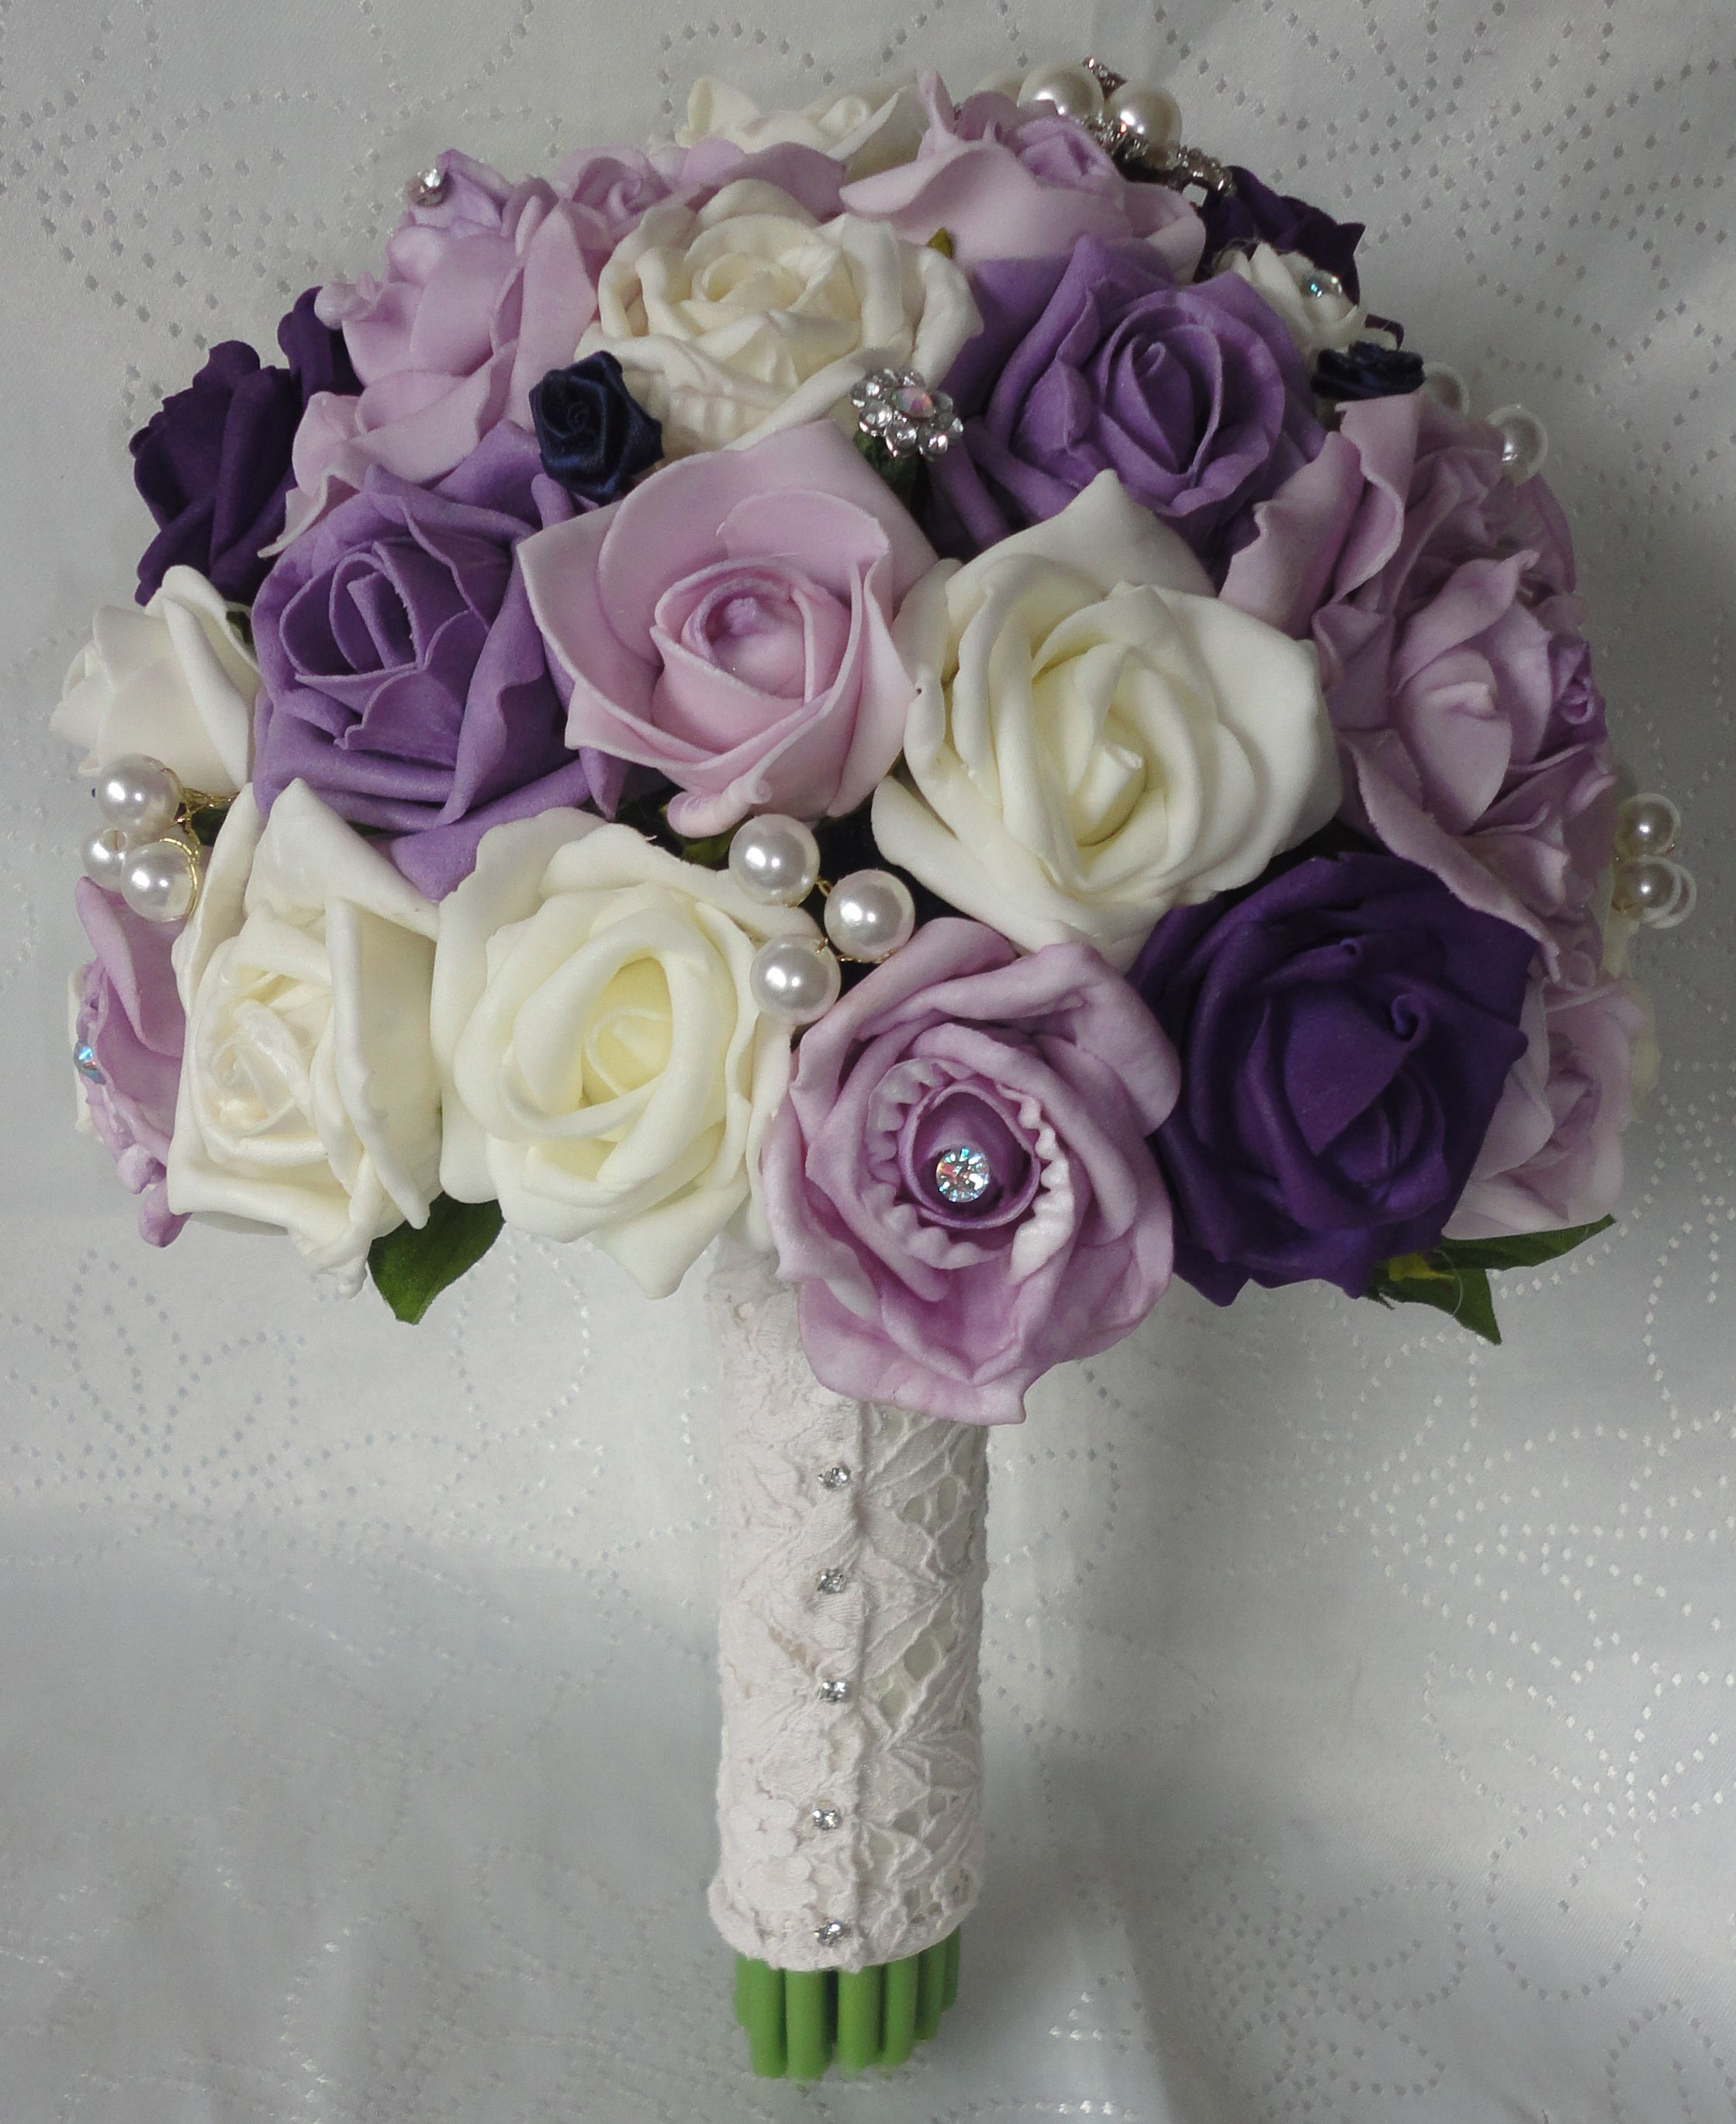 Plum And Ivory Bridal Bouquet Wedding Bouquet In Shades Of Dusky